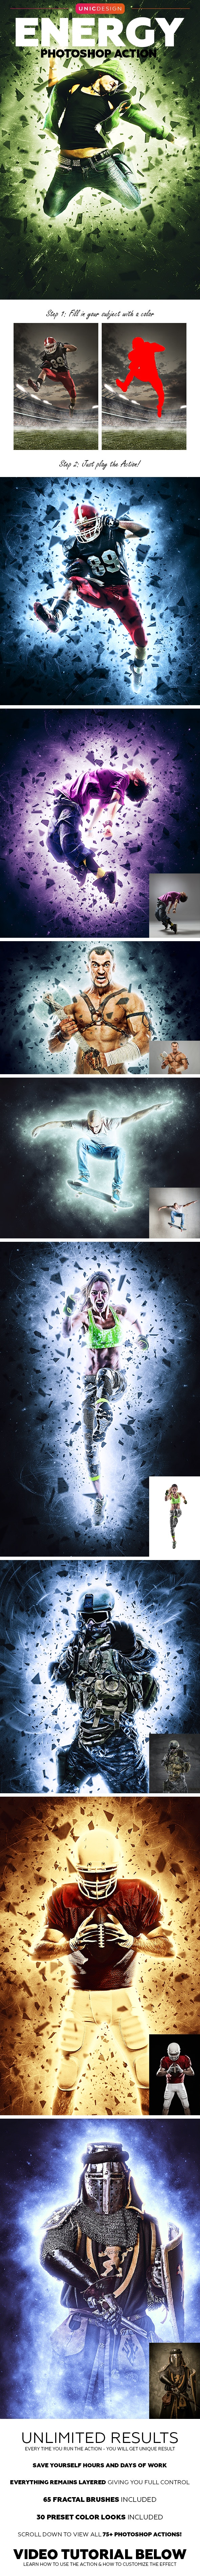 Energy Photoshop Action - Photo Effects Actions